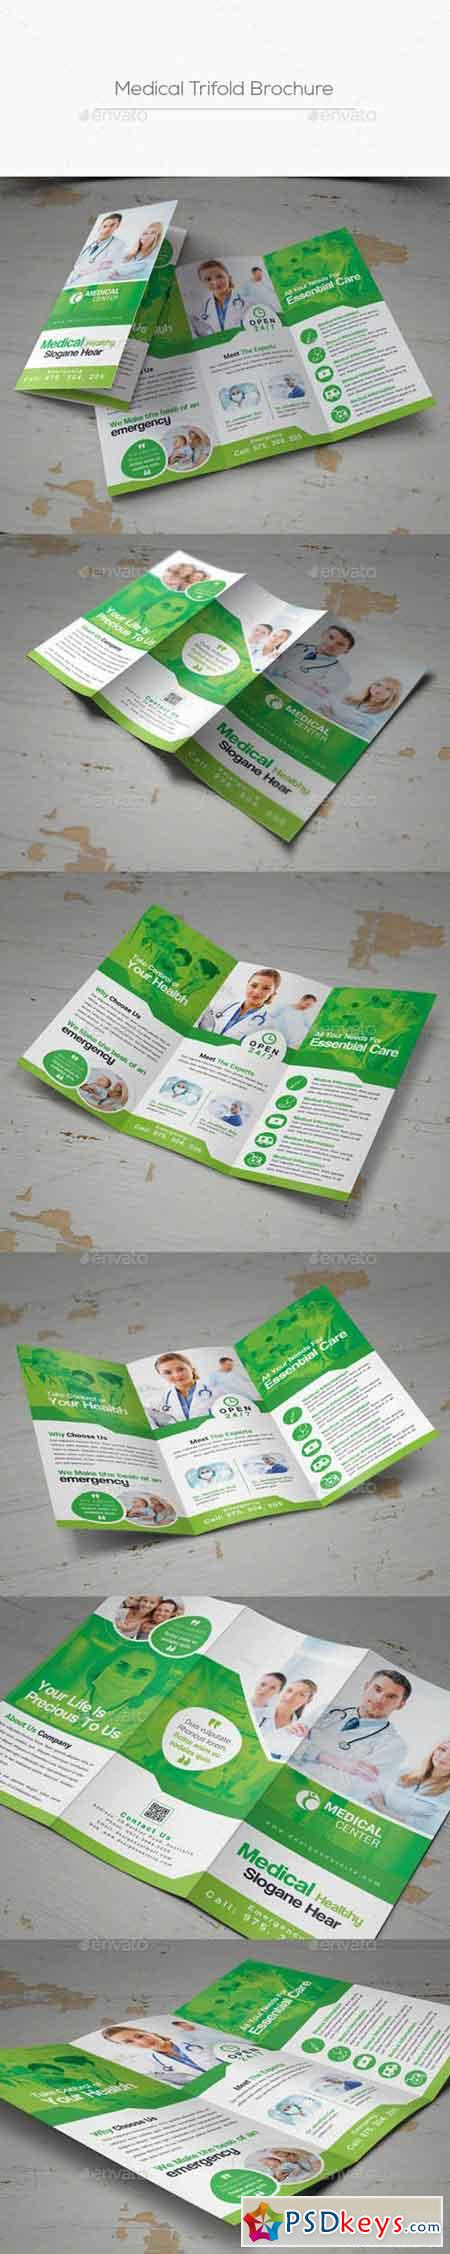 Medical Trifold Brochure 20848428